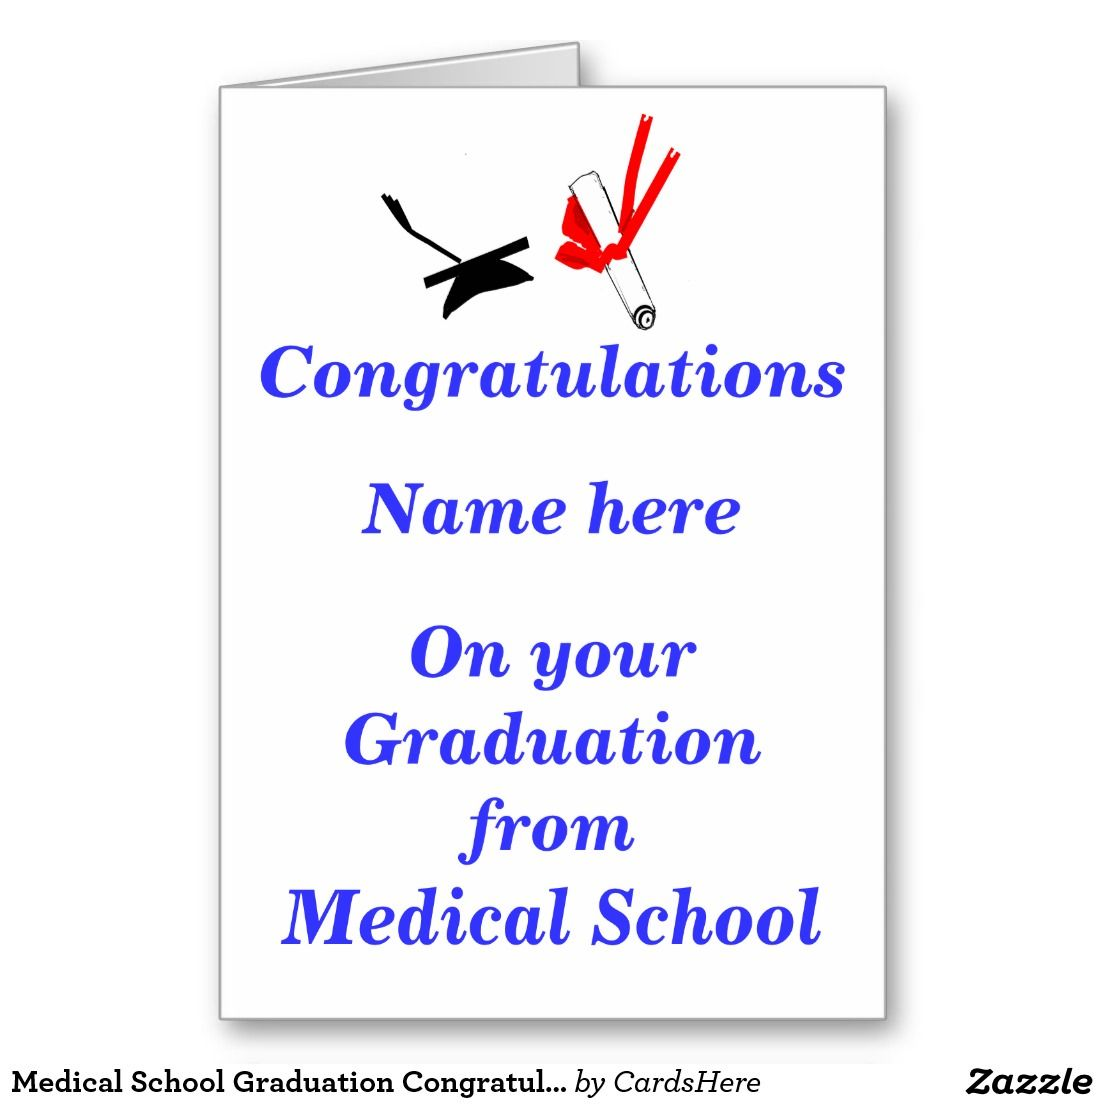 Medical school graduation congratulations greeting card cards medical school graduation congratulations greeting card kristyandbryce Gallery